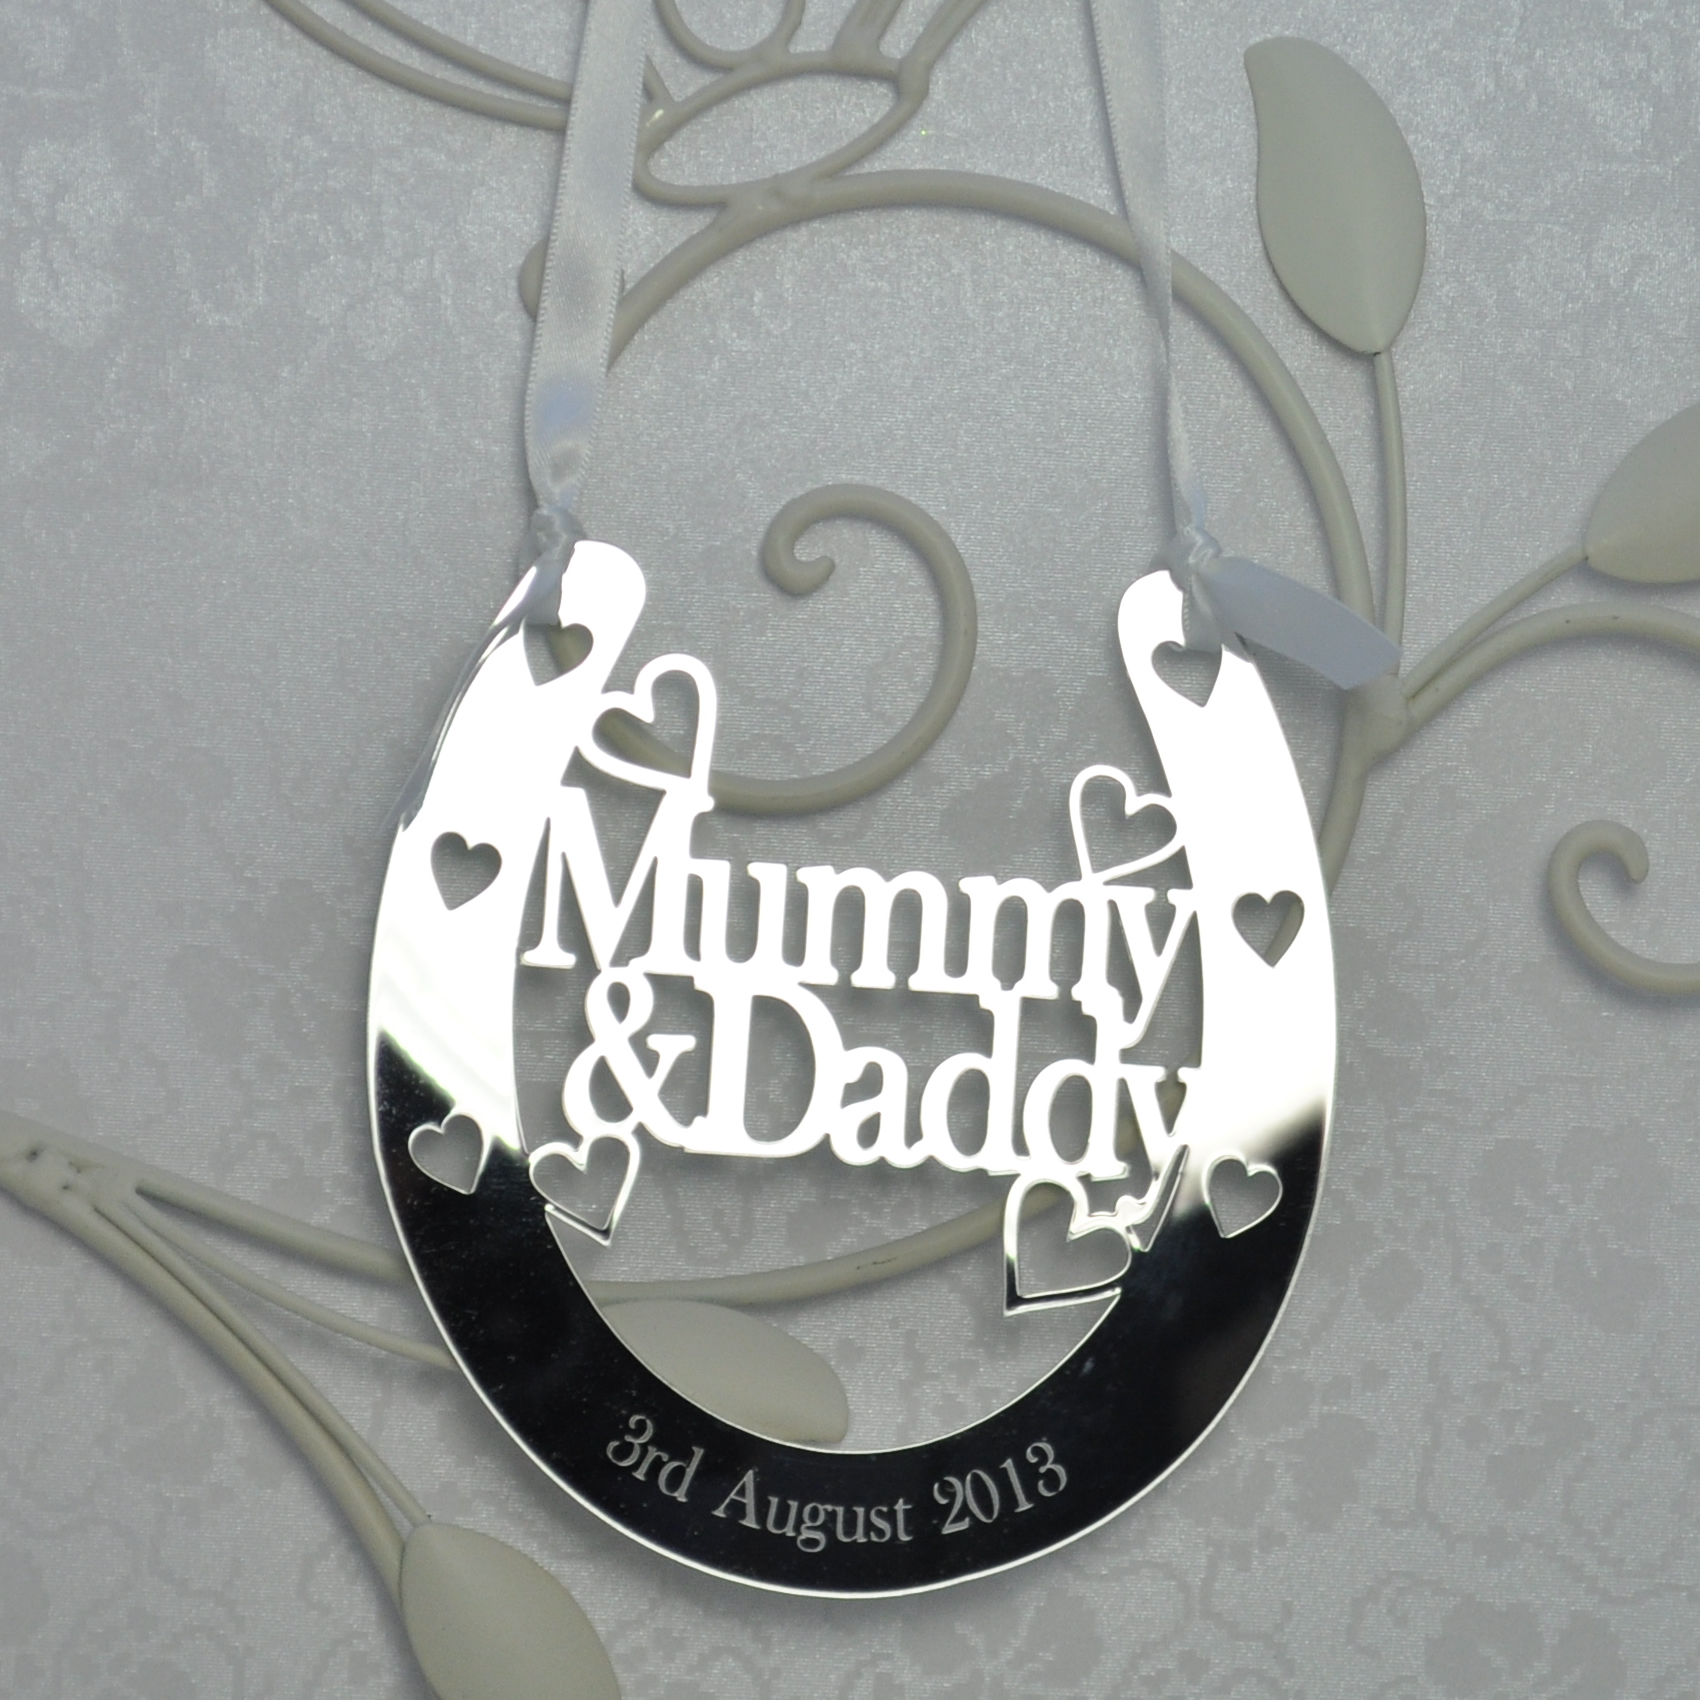 Horseshoe Wedding Gift: Personalised Mummy & Daddy Good Luck Horseshoe Bridal